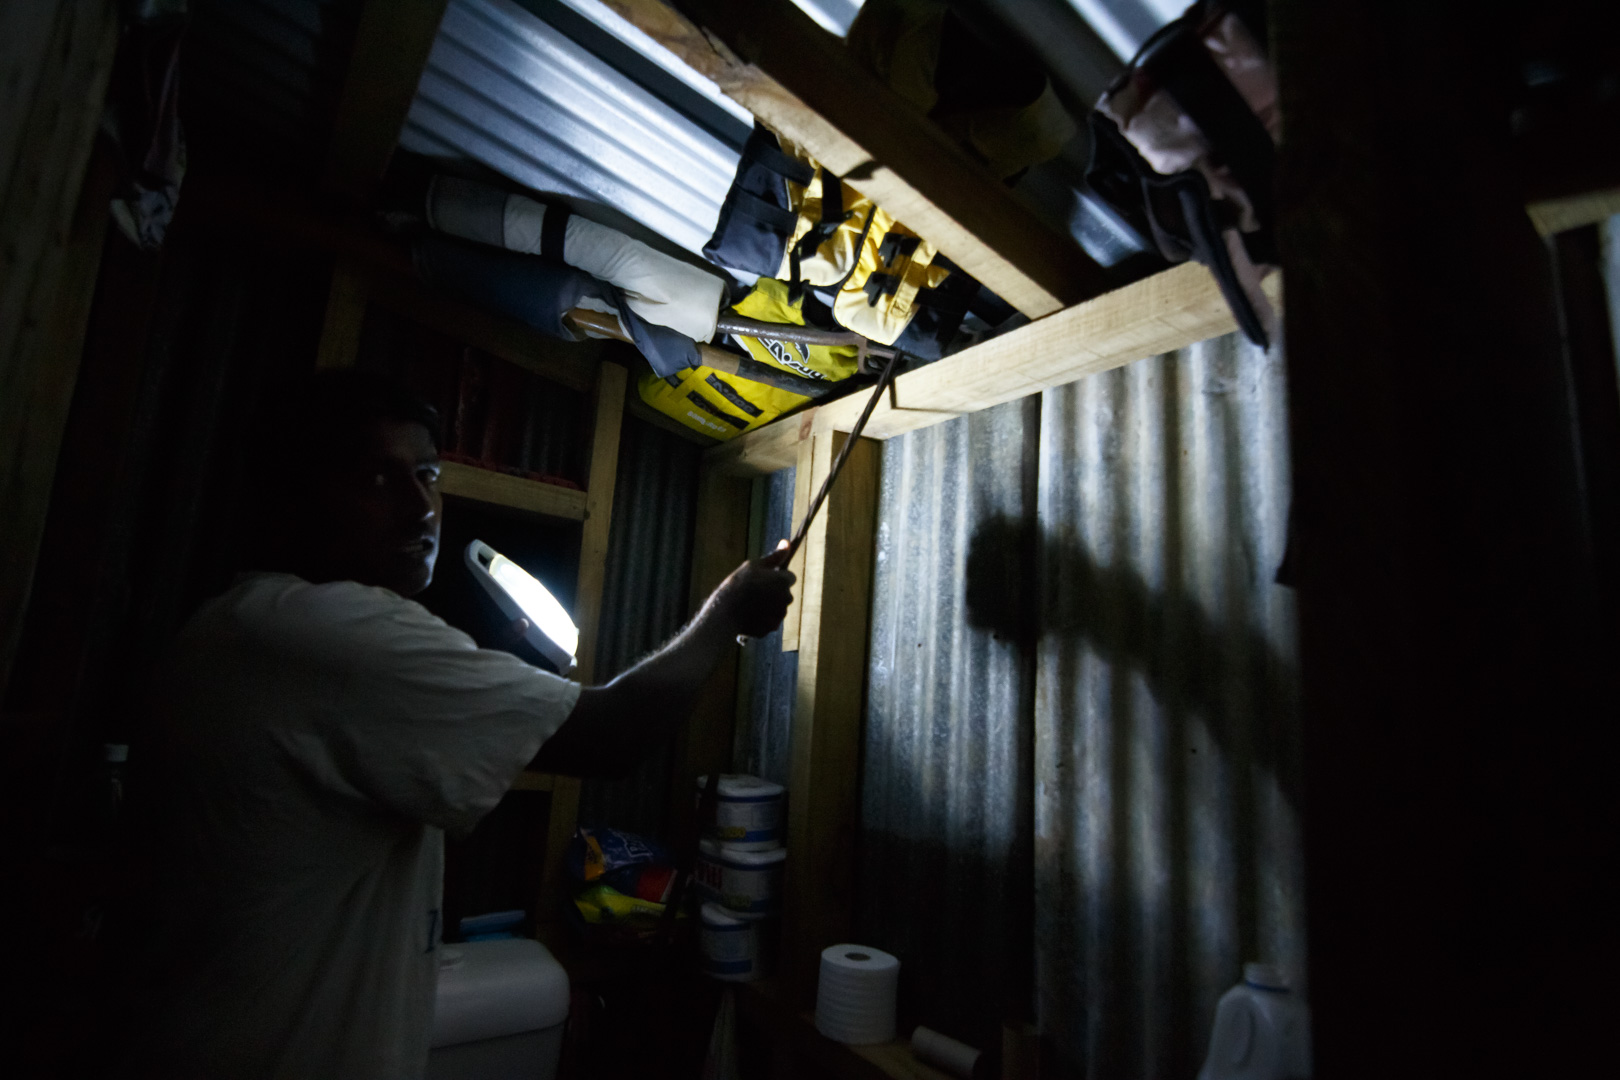 A resident from Nausori, Fiji, points to the emergency repairs he performed on his corrugated iron roof when it became dislodged and began to leak water after Cyclone Winston swept through the area on February 20, 2016.